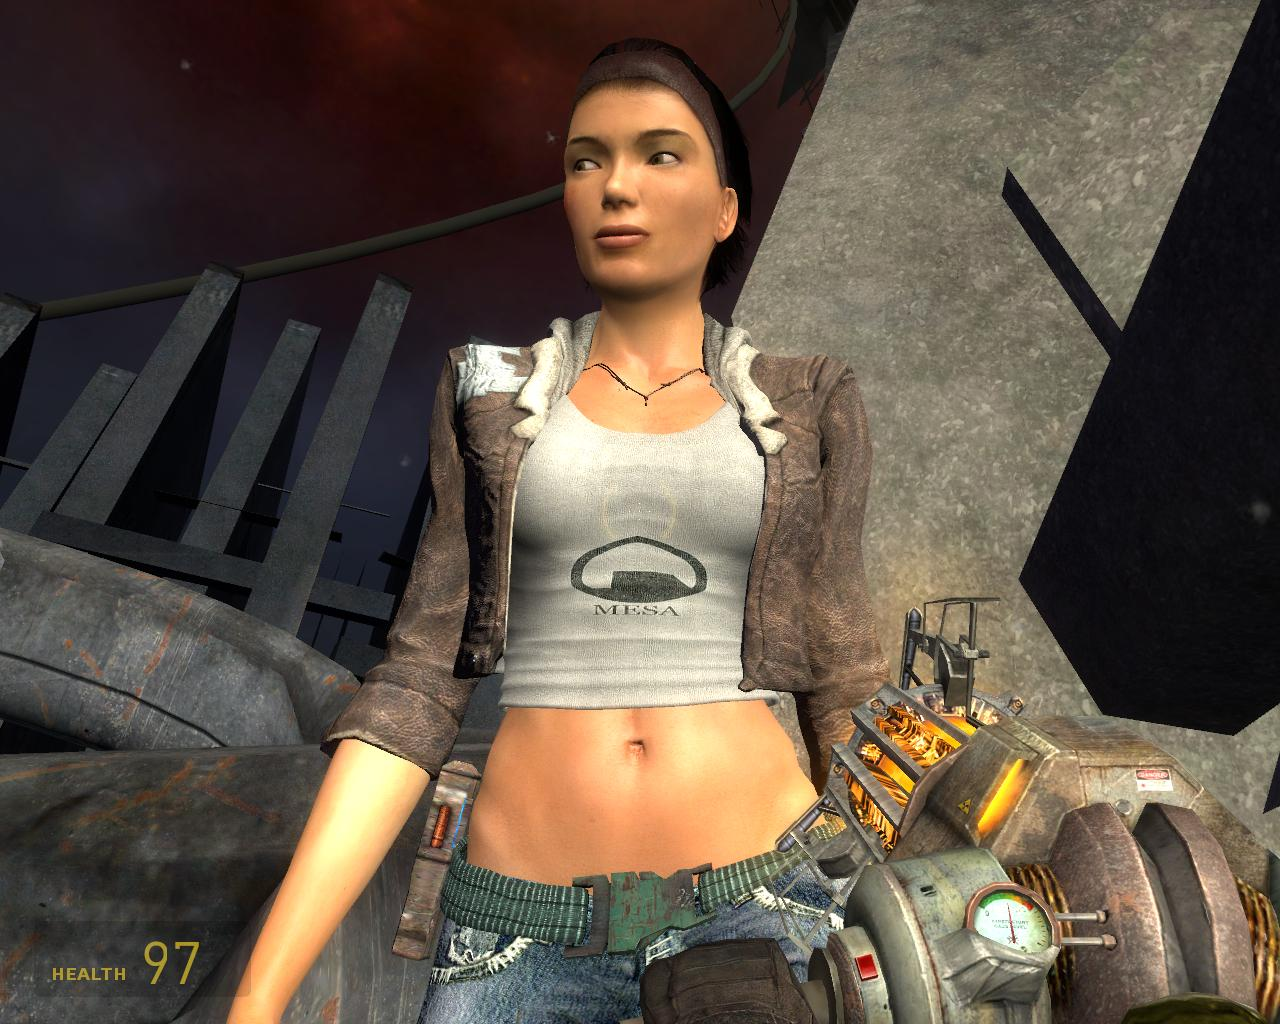 Halflife porn video porn galleries